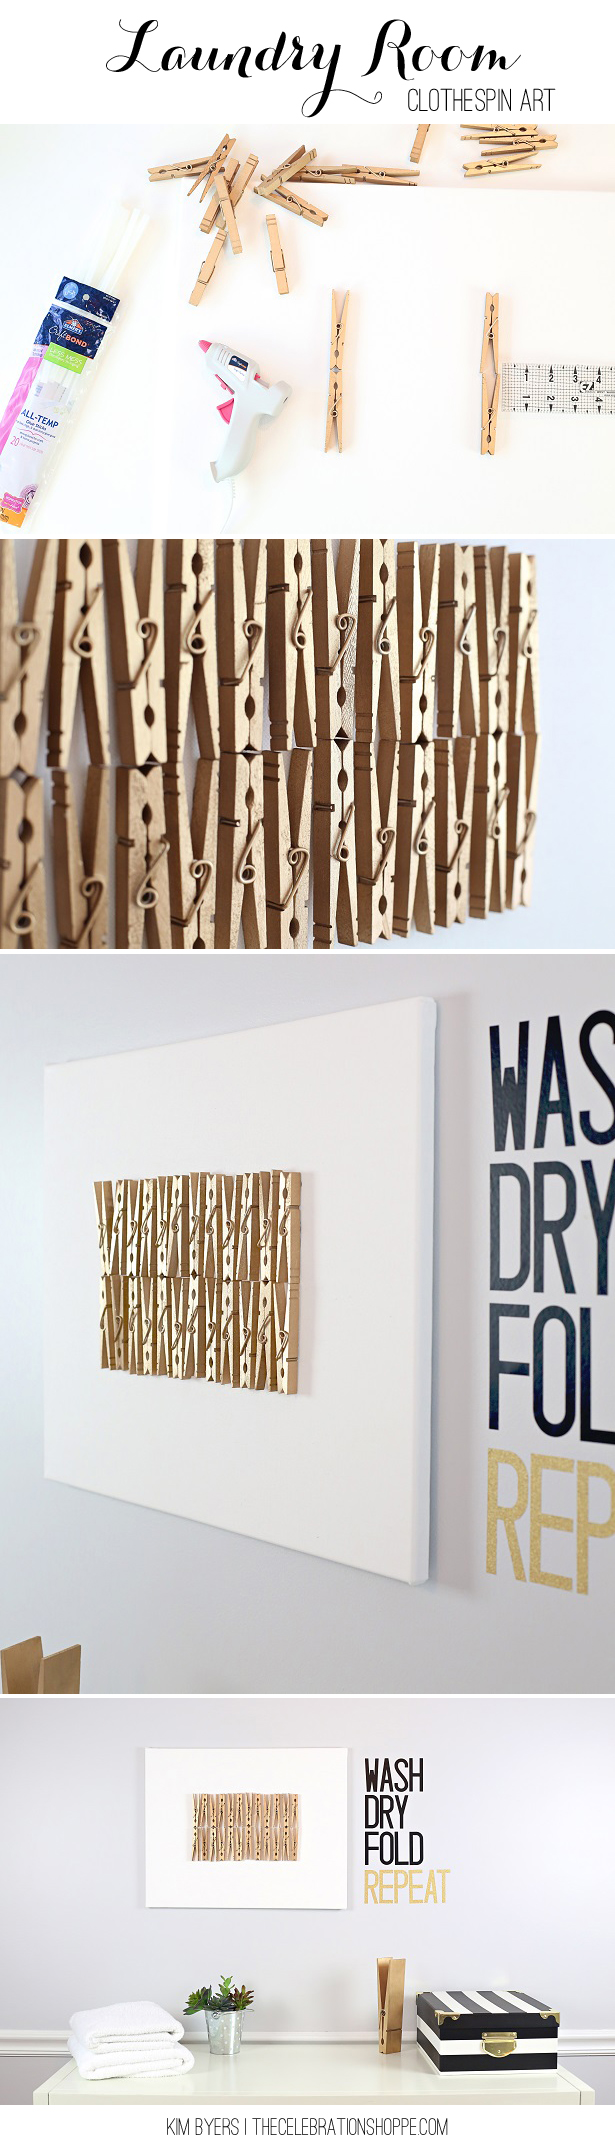 Clothespin Crafts For The Laundry Room | Kim Byers